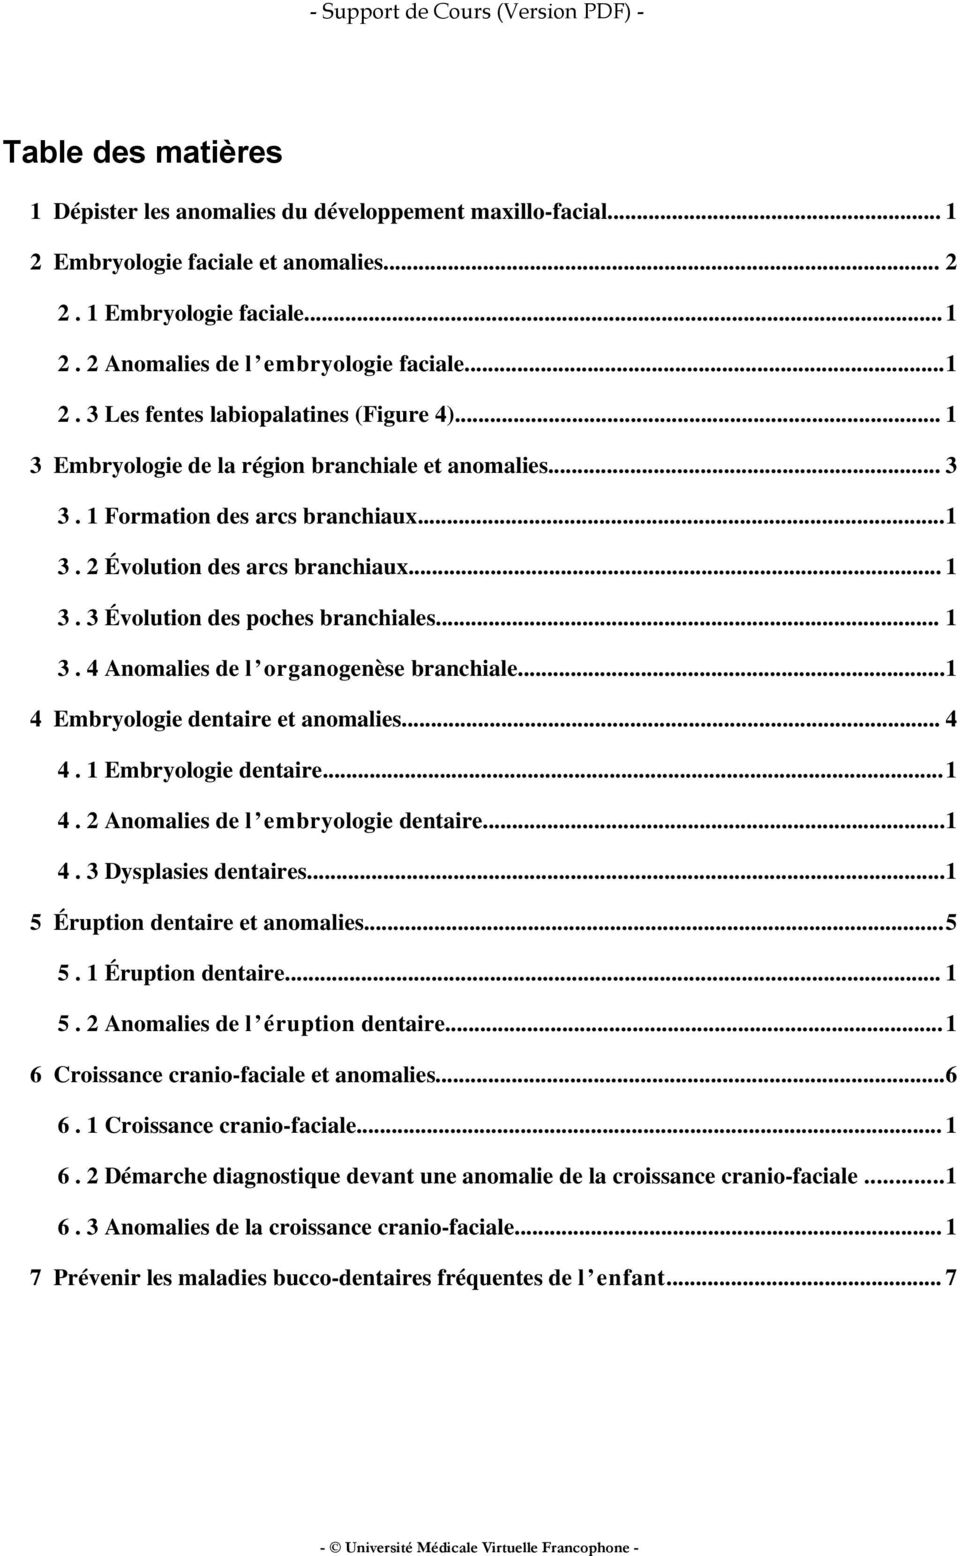 ..1 4 Embryologie dentaire et anomalies... 4 4. 1 Embryologie dentaire...1 4. 2 Anomalies de l embryologie dentaire...1 4. 3 Dysplasies dentaires...1 5 Éruption dentaire et anomalies...5 5.